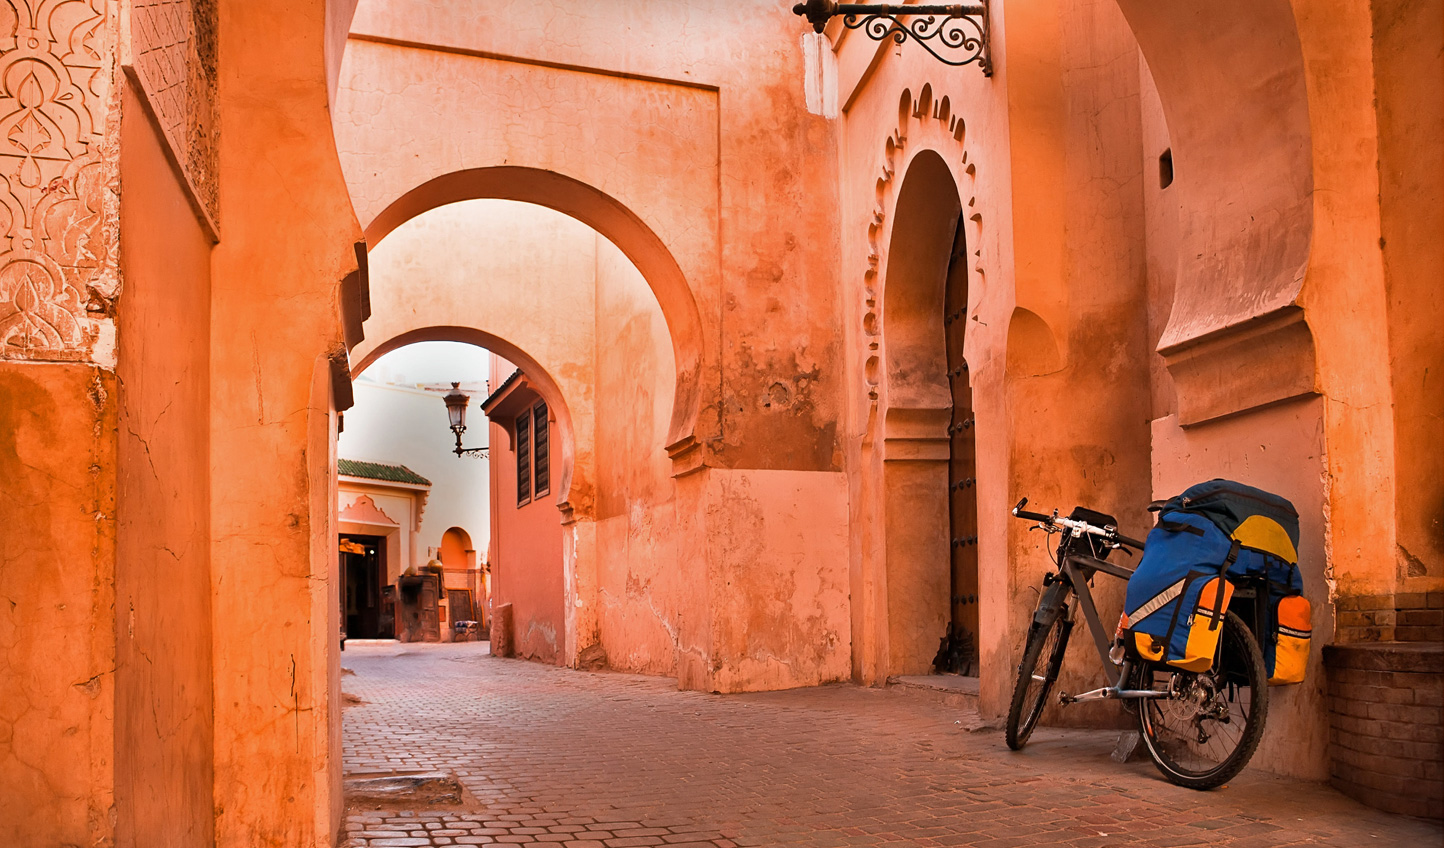 Lose yourself in the medina